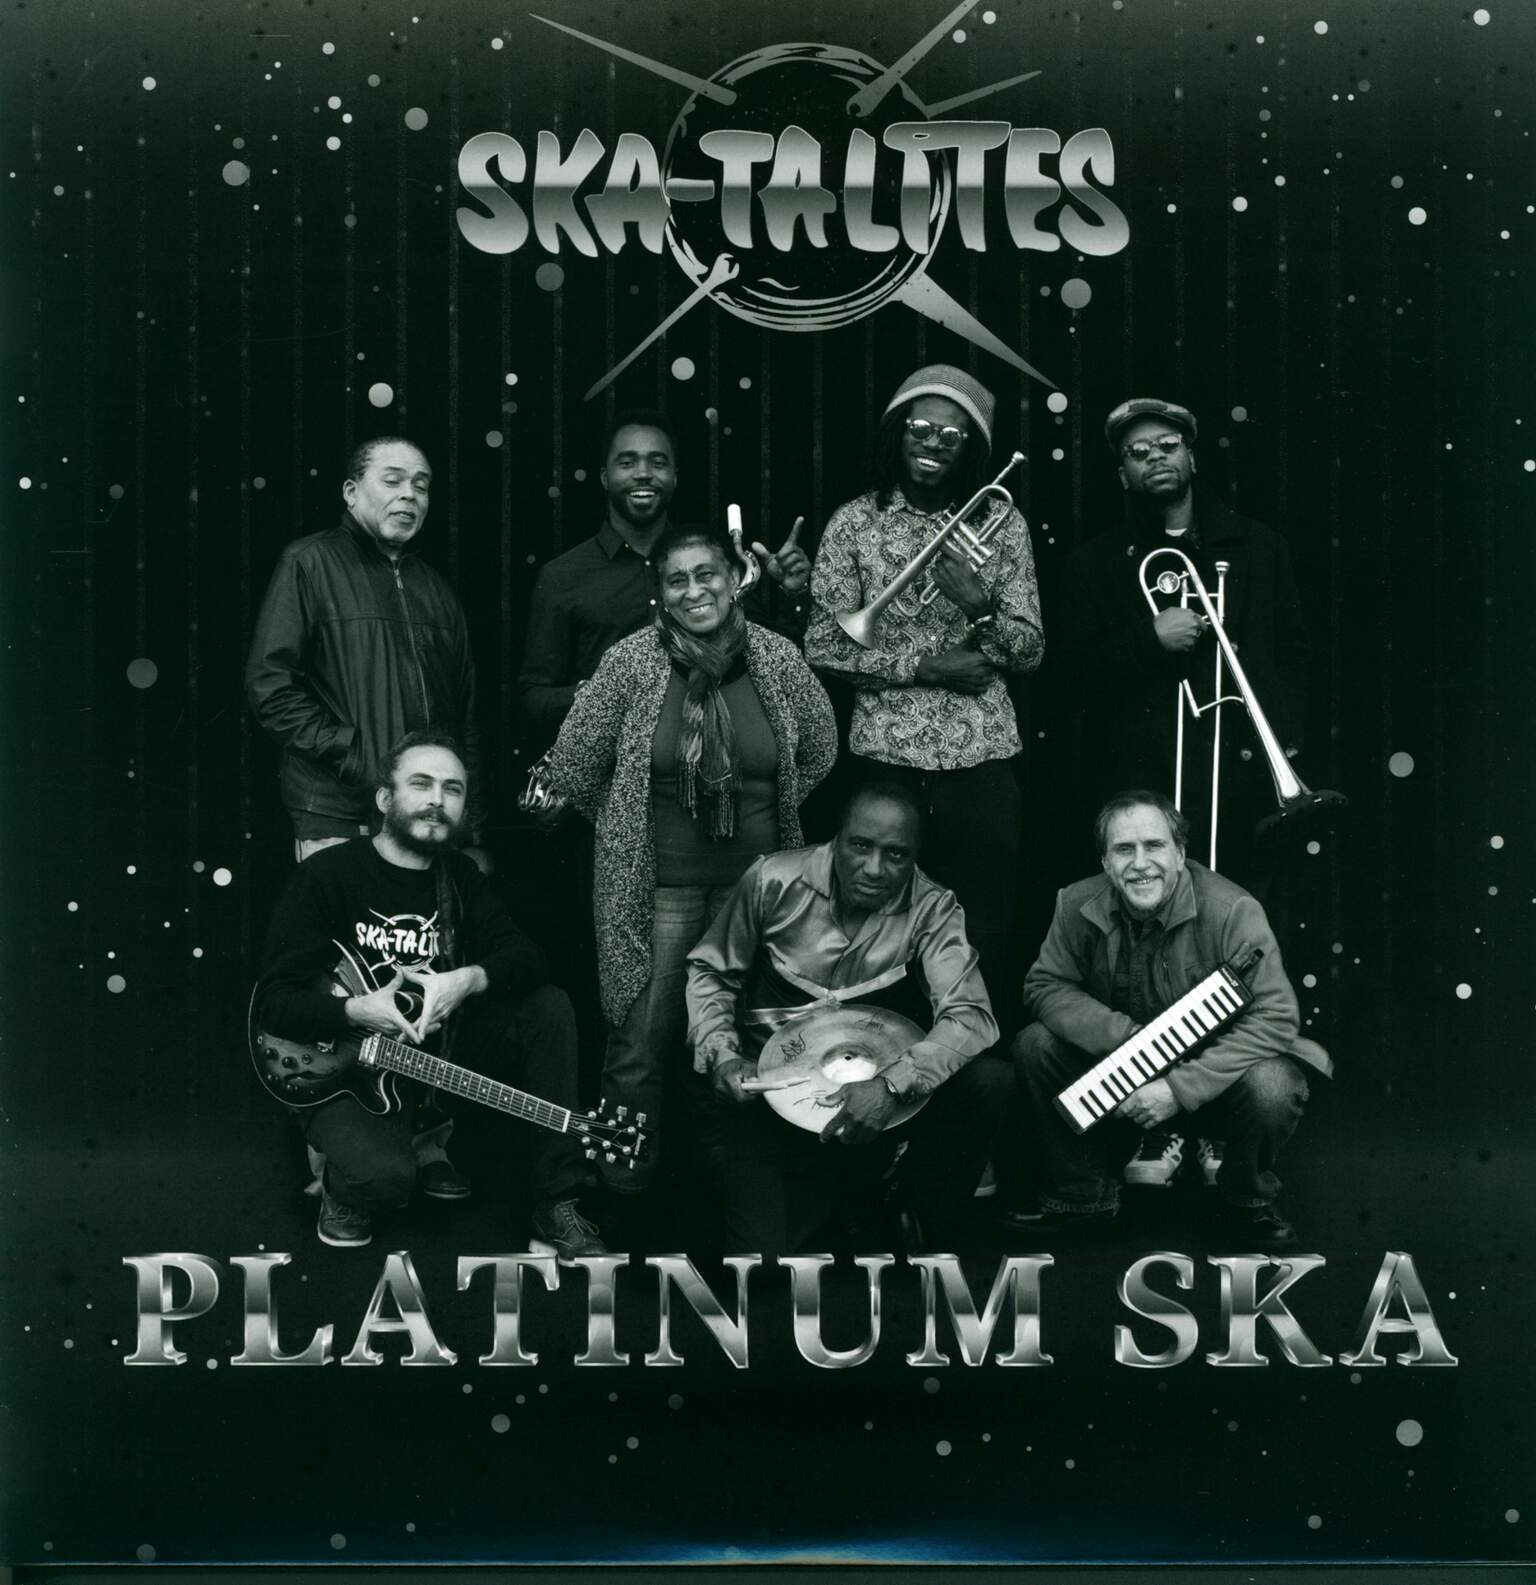 The Skatalites: Platinum Ska, 1×LP (Vinyl)